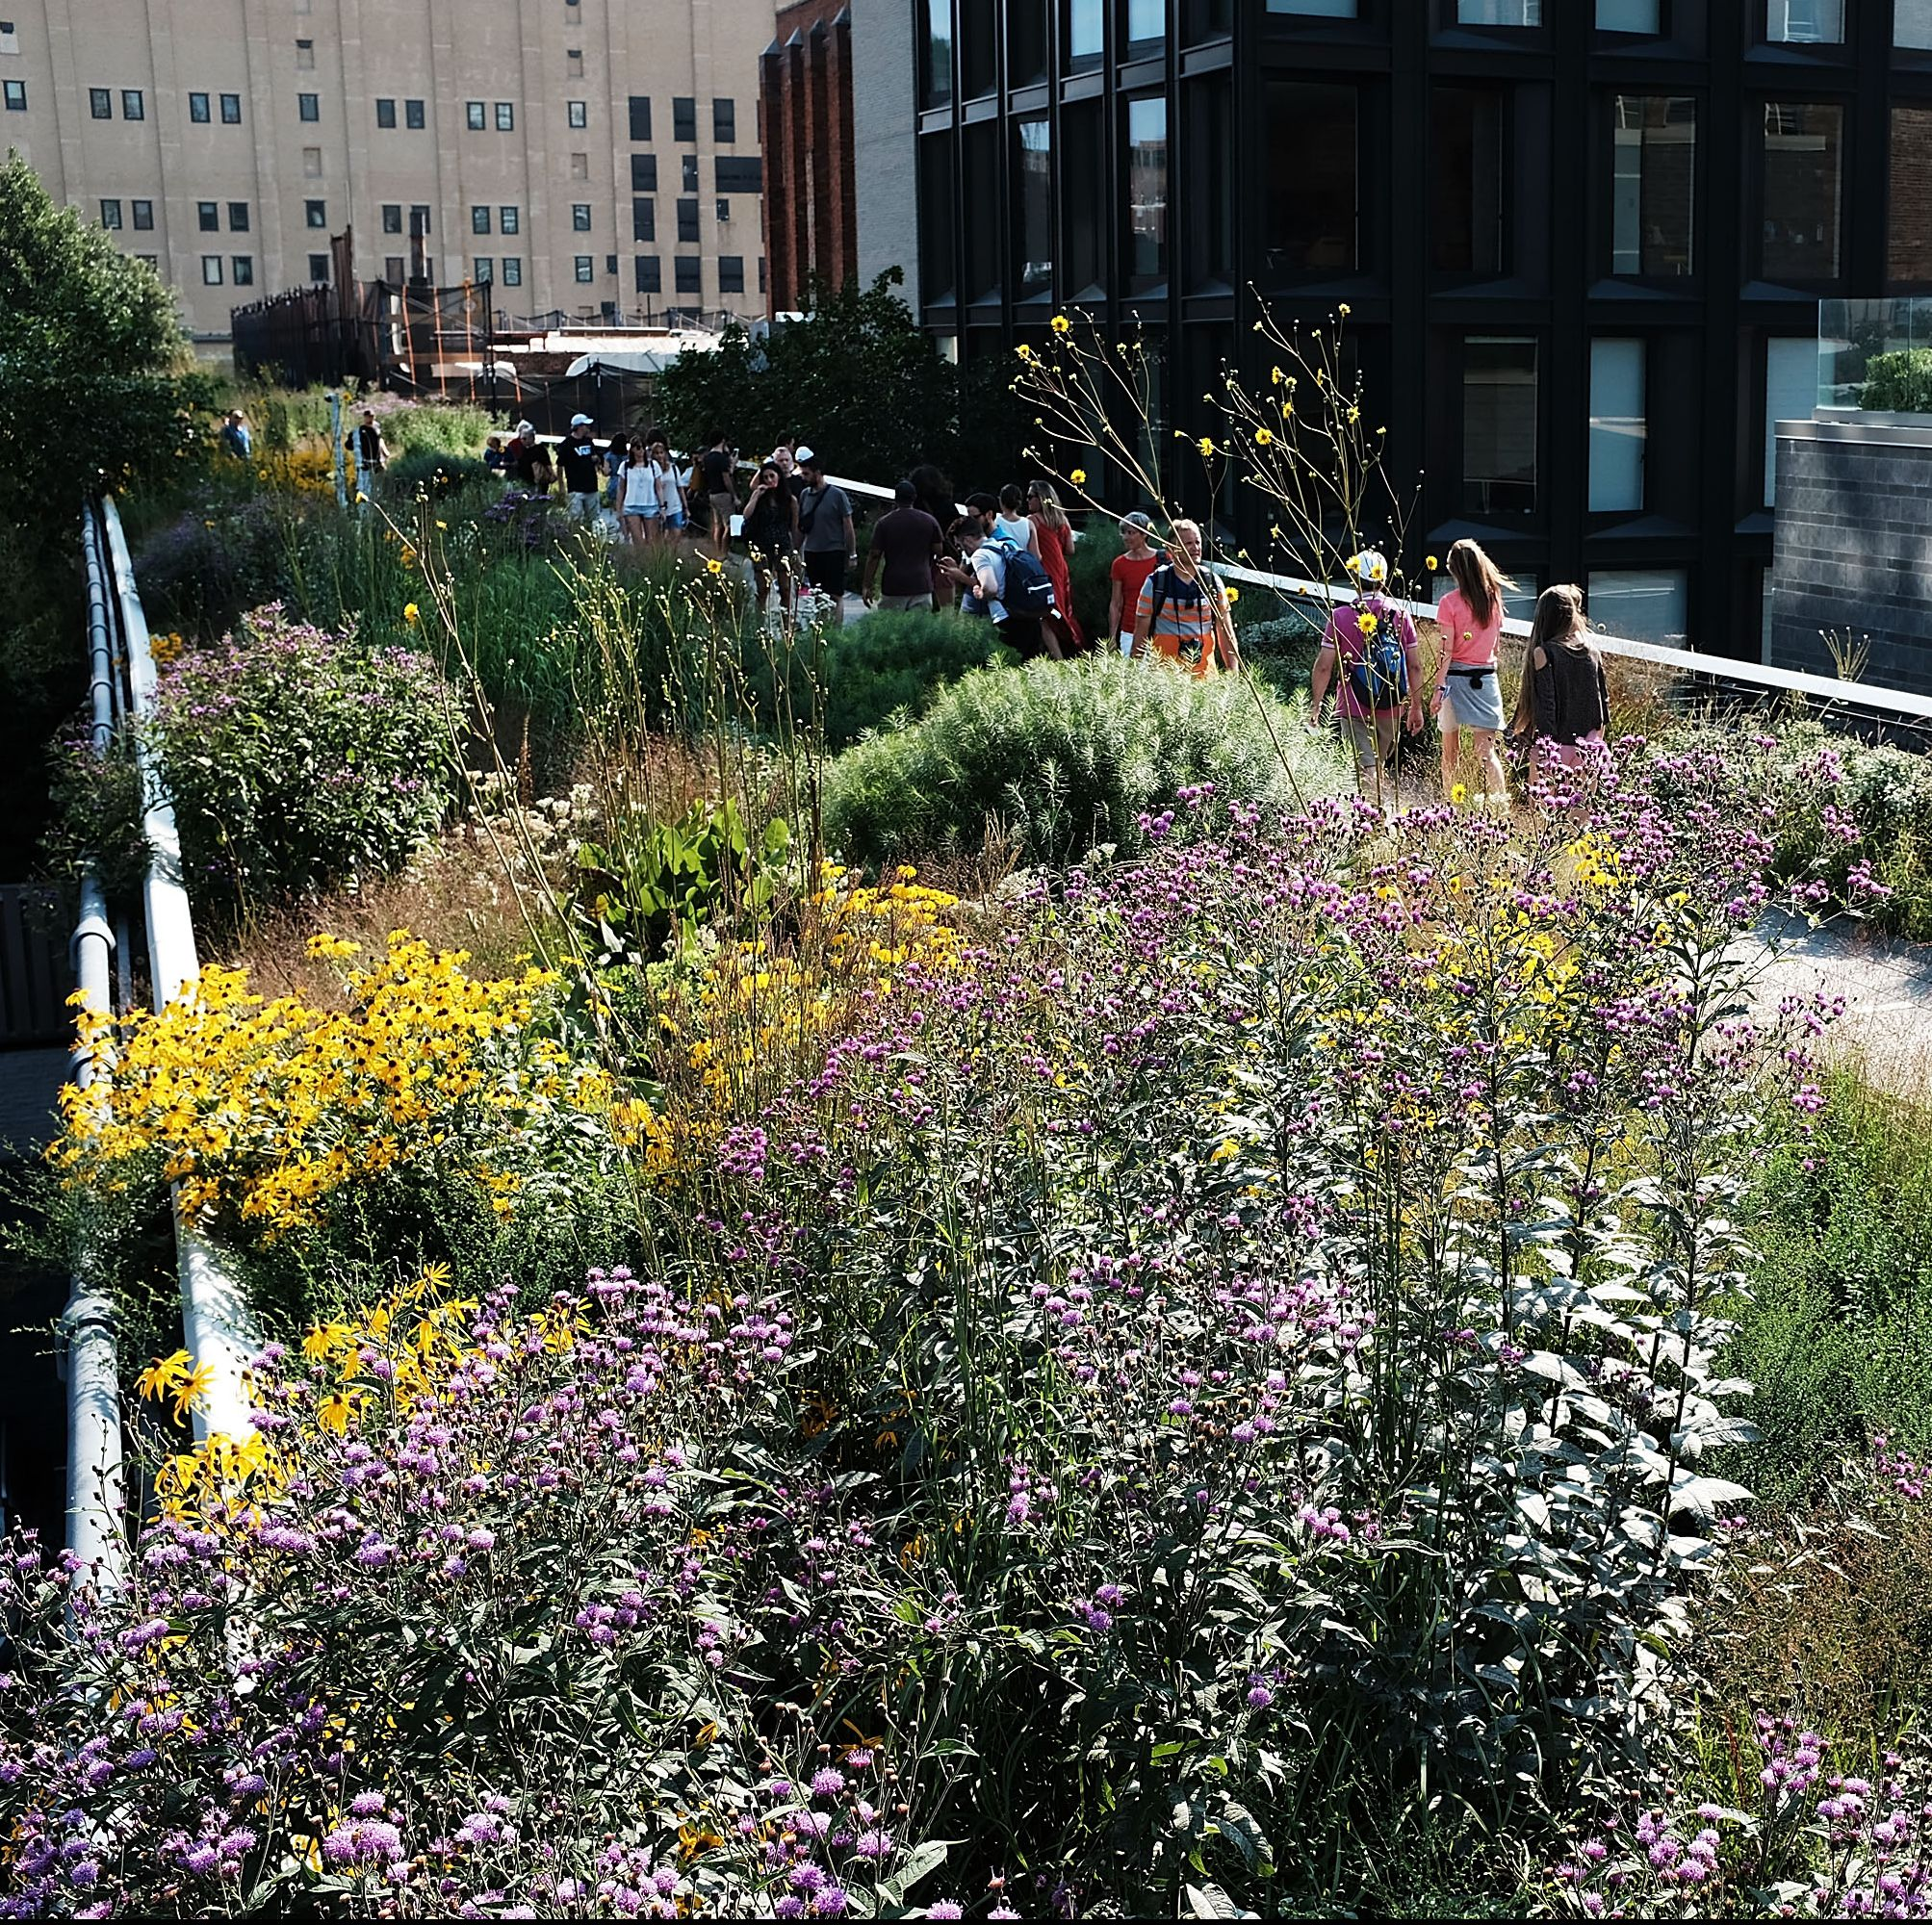 New Yorkers Enjoy High Line Park In 80 Degree Summer Weather